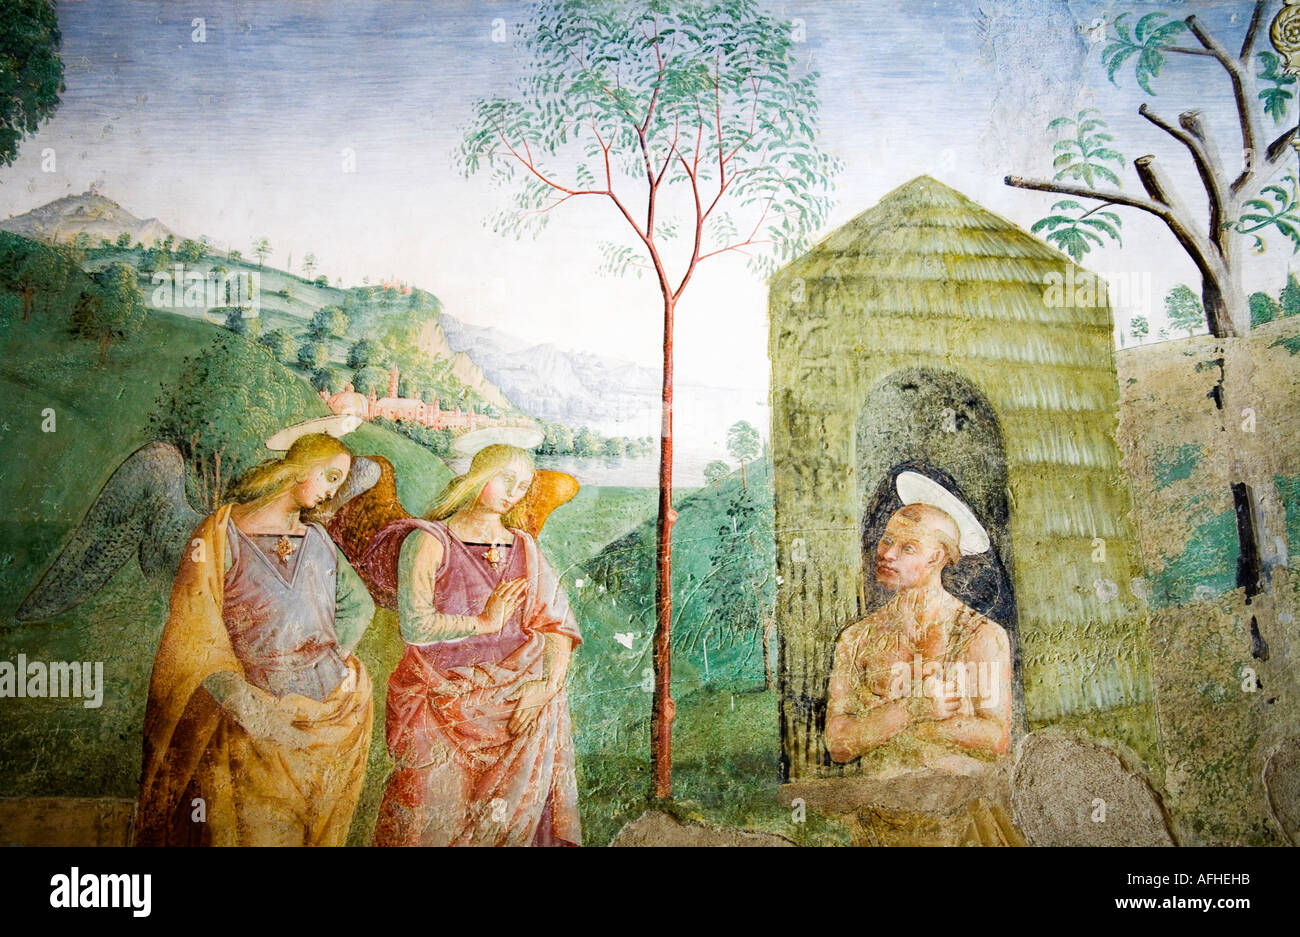 St Saint Francis of Assisi with angels fresco in the grounds of Basilica church of Santa Maria degli Angeli Assisi Umbria Italy - Stock Image